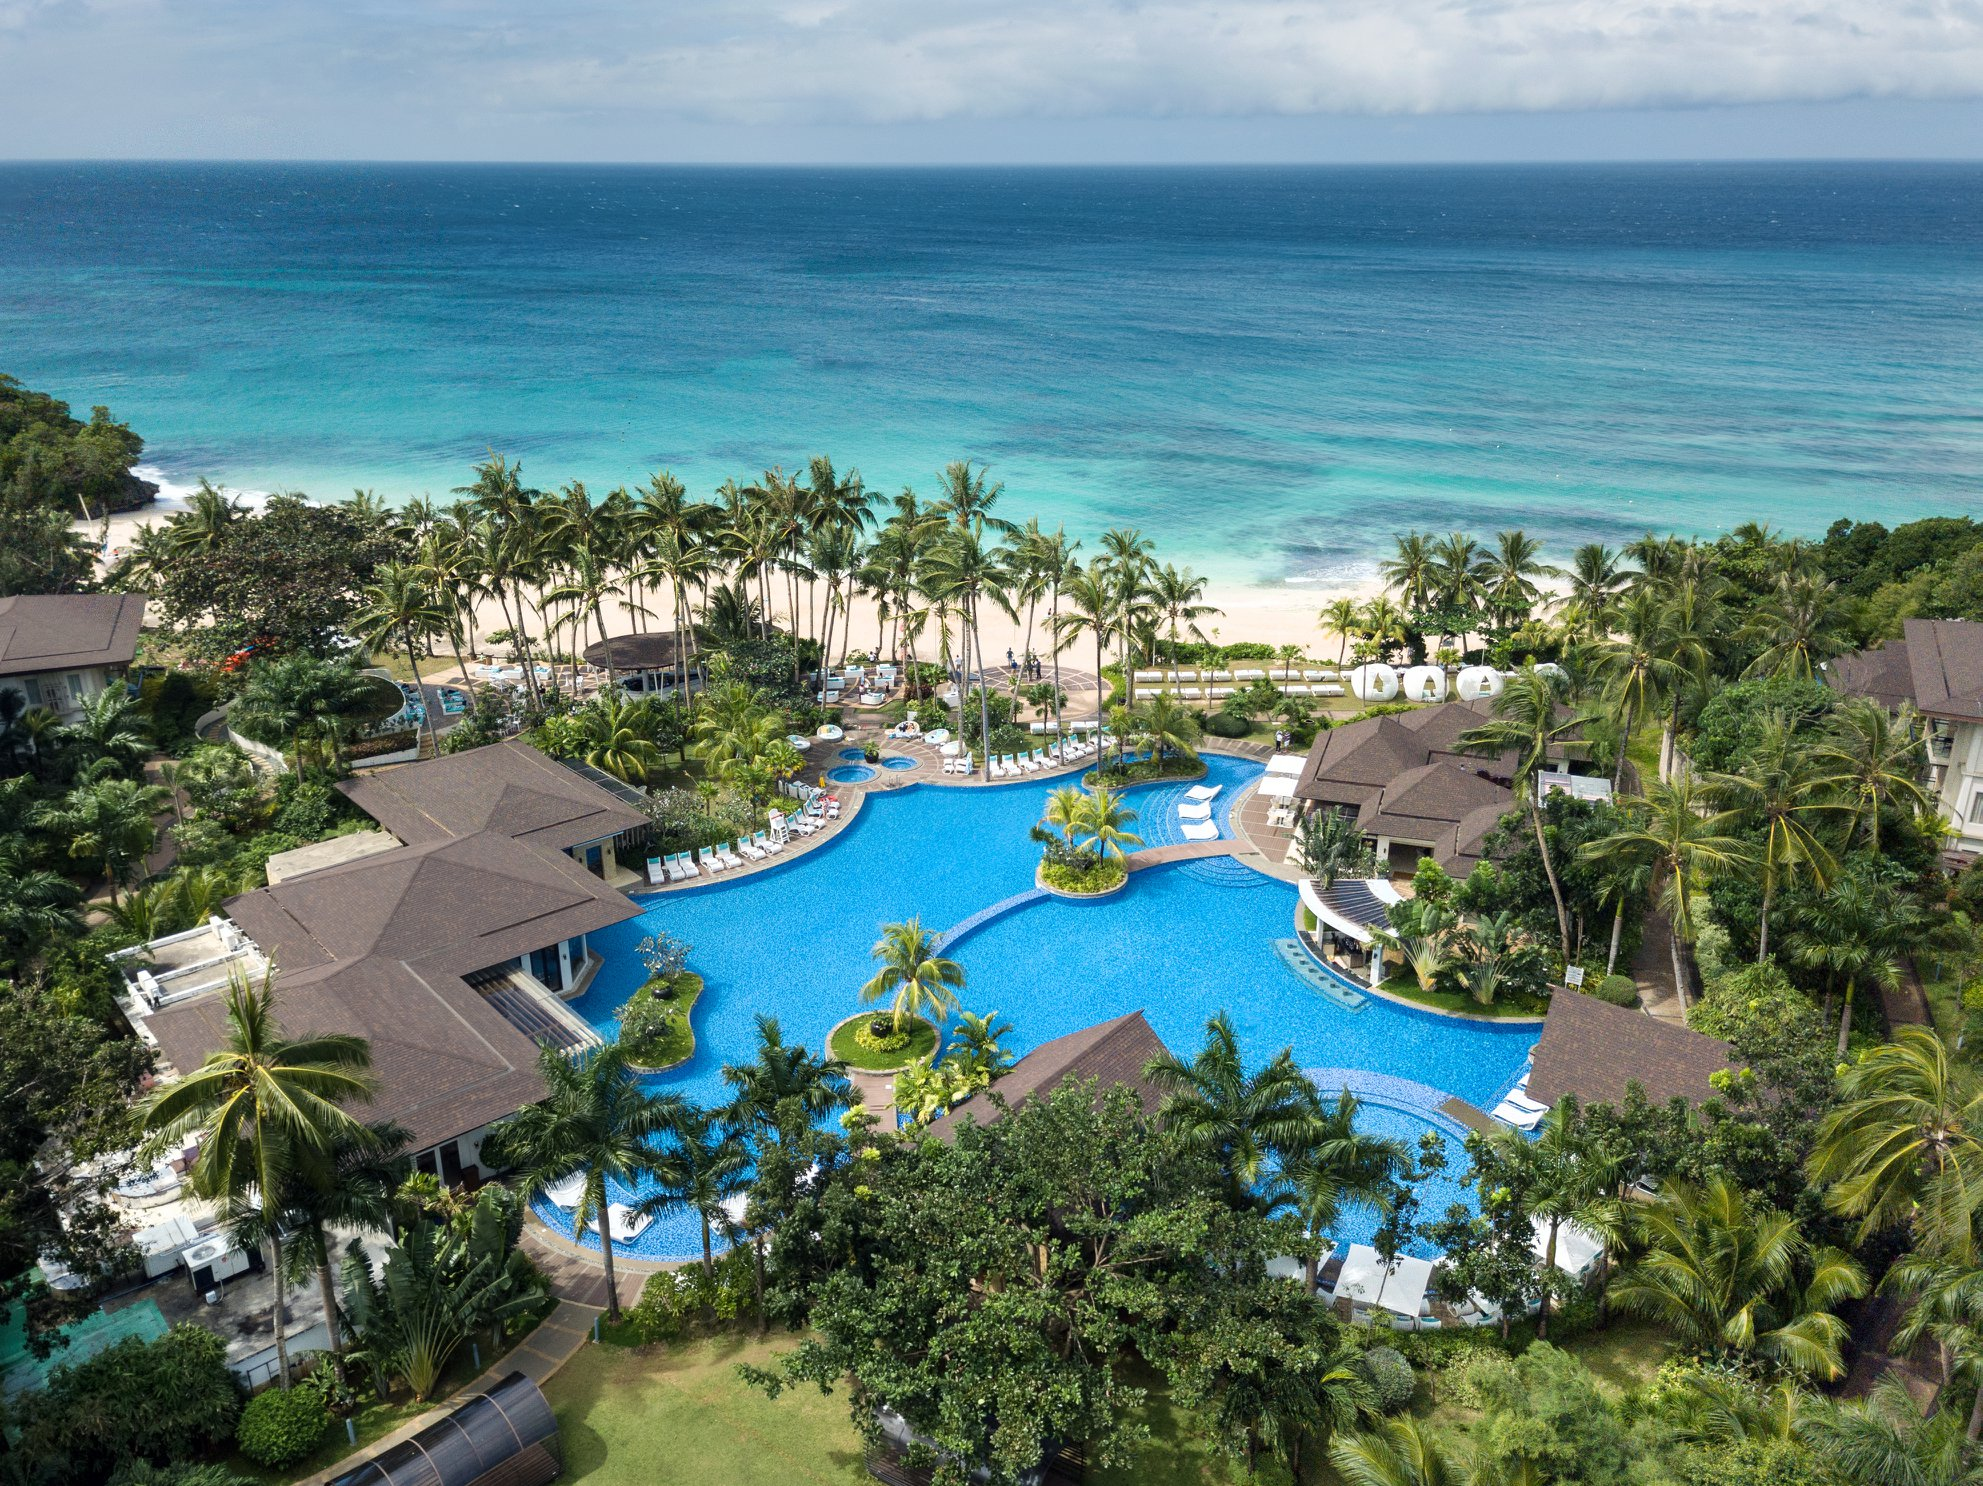 10 Best Accredited Hotels and Resorts in Boracay Island Philippines